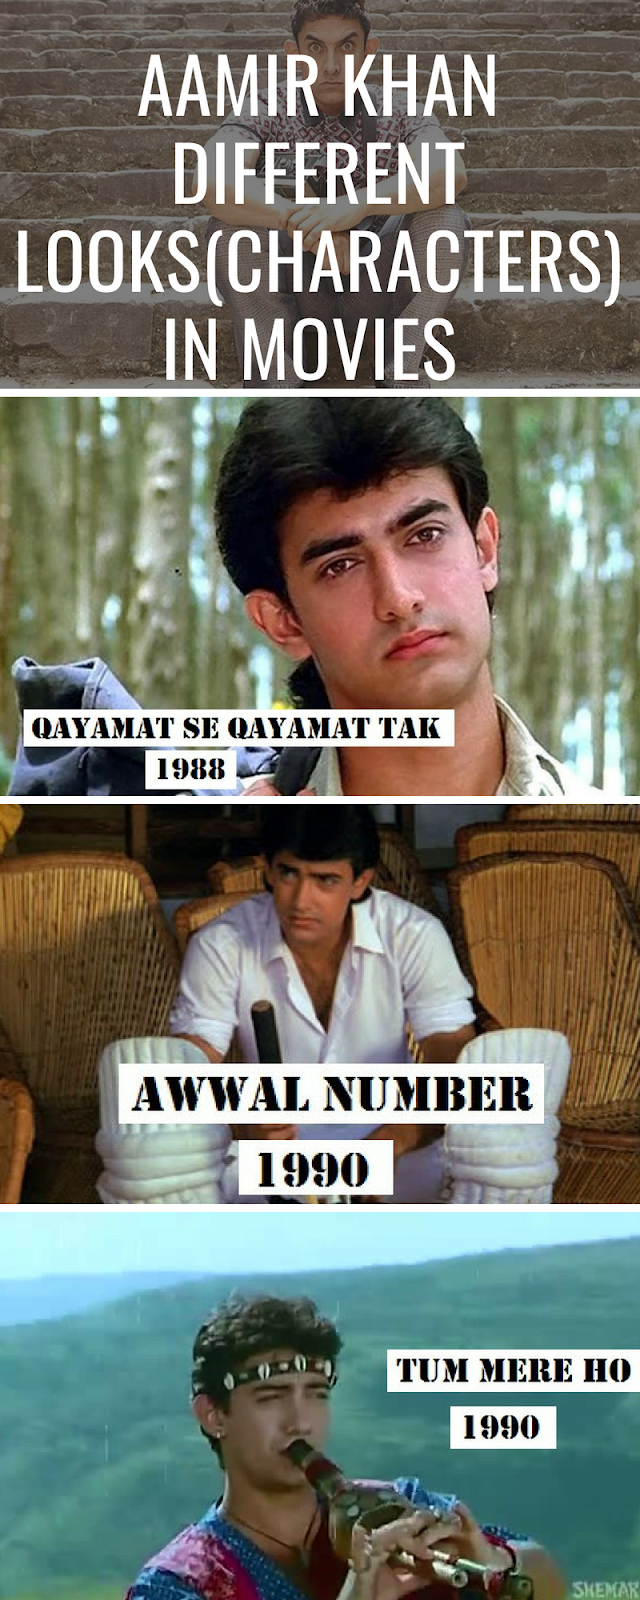 Aamir different looks in movies (infographic)